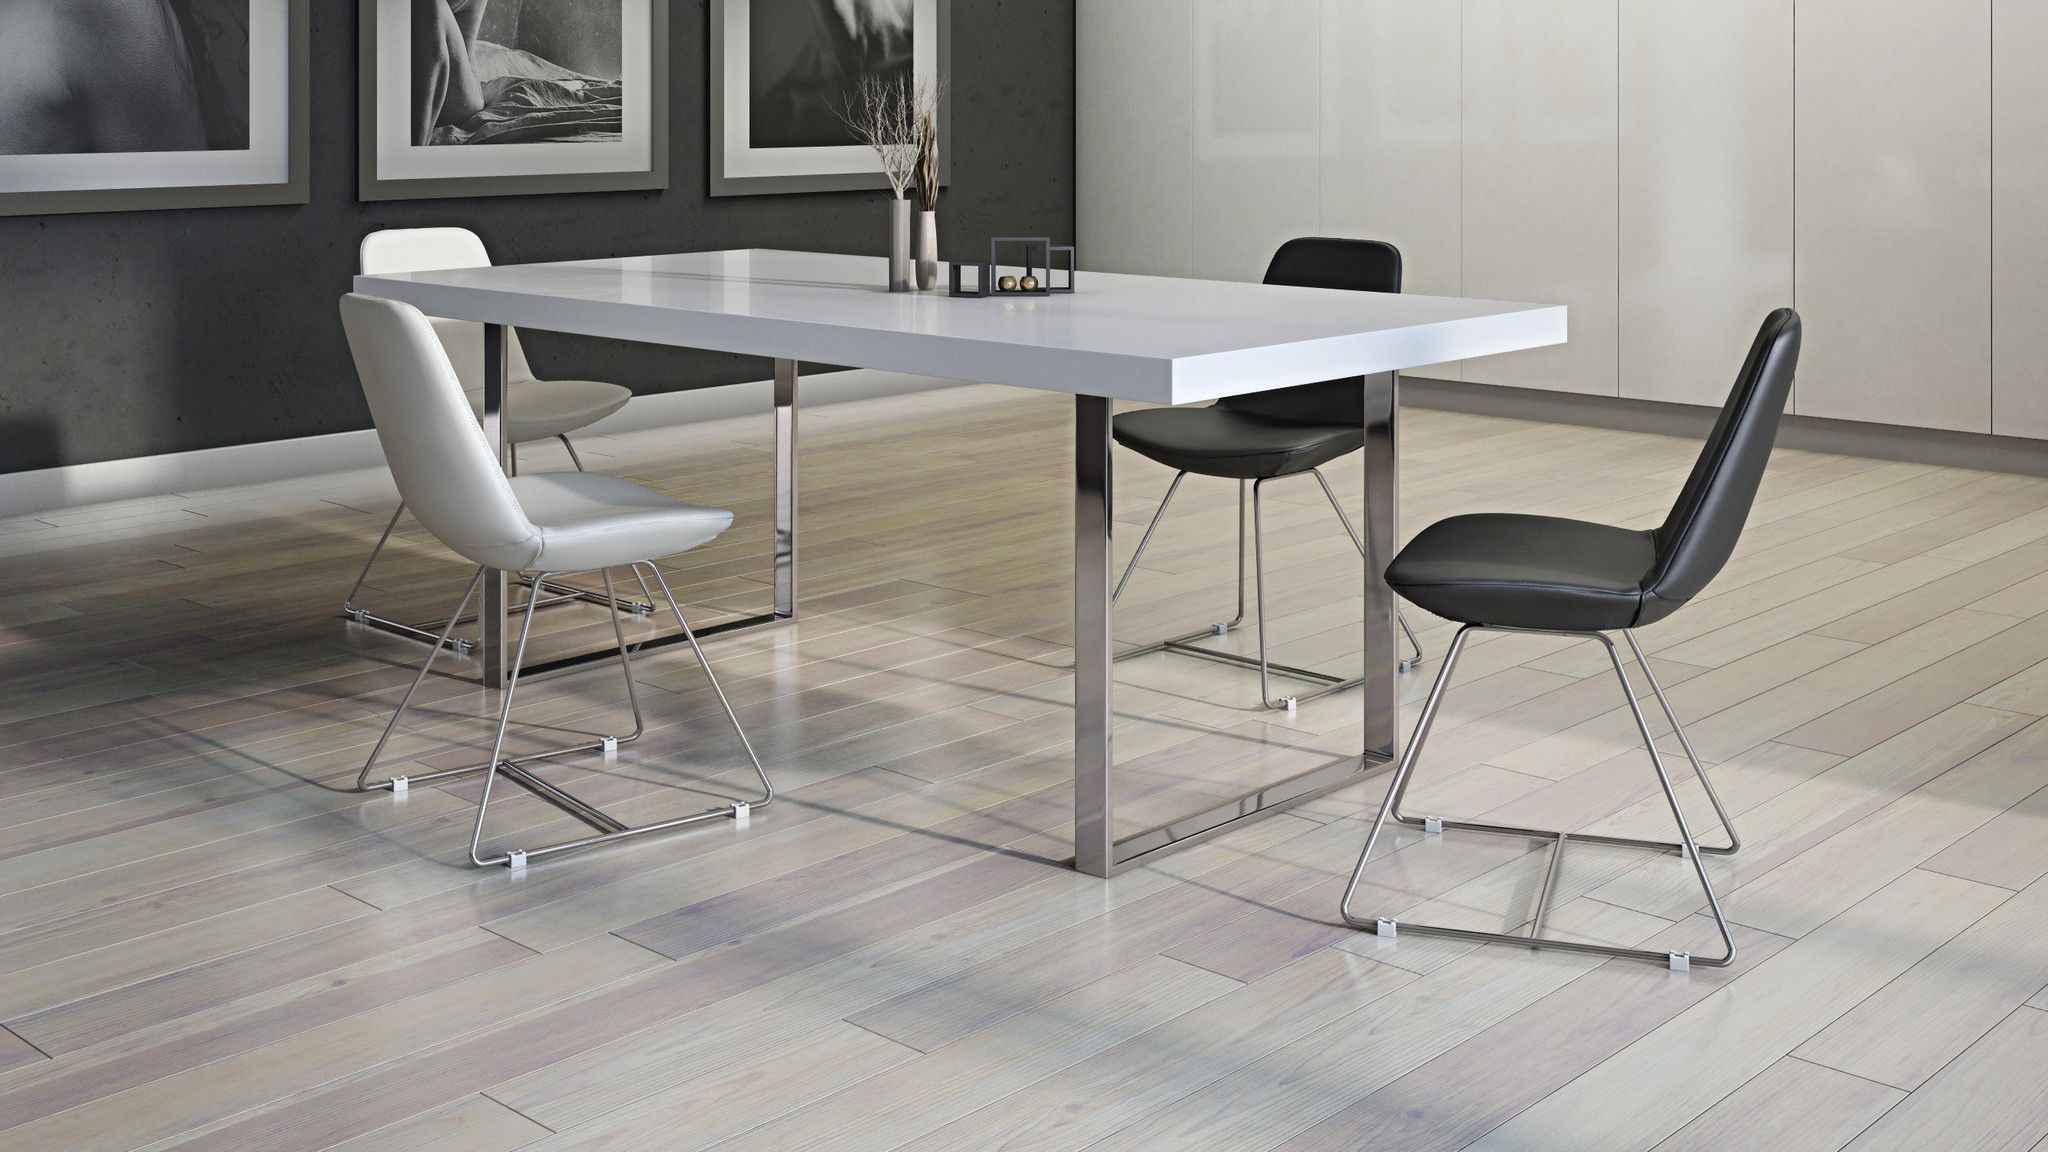 Aeon Brandon Dining Table Products Pinterest